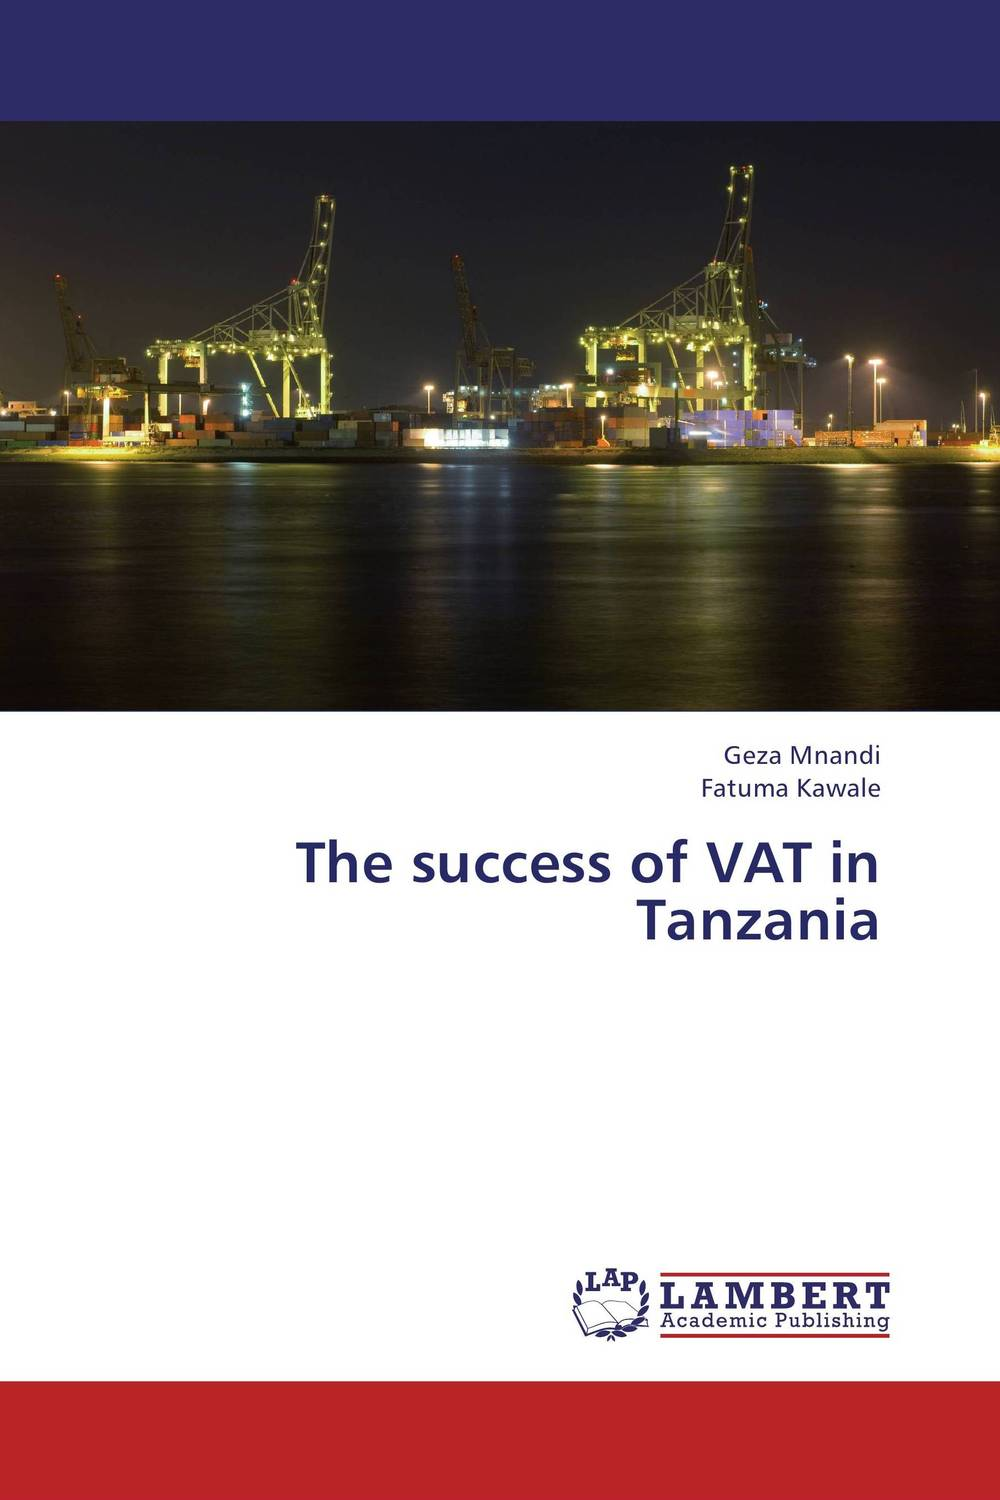 The success of VAT in Tanzania